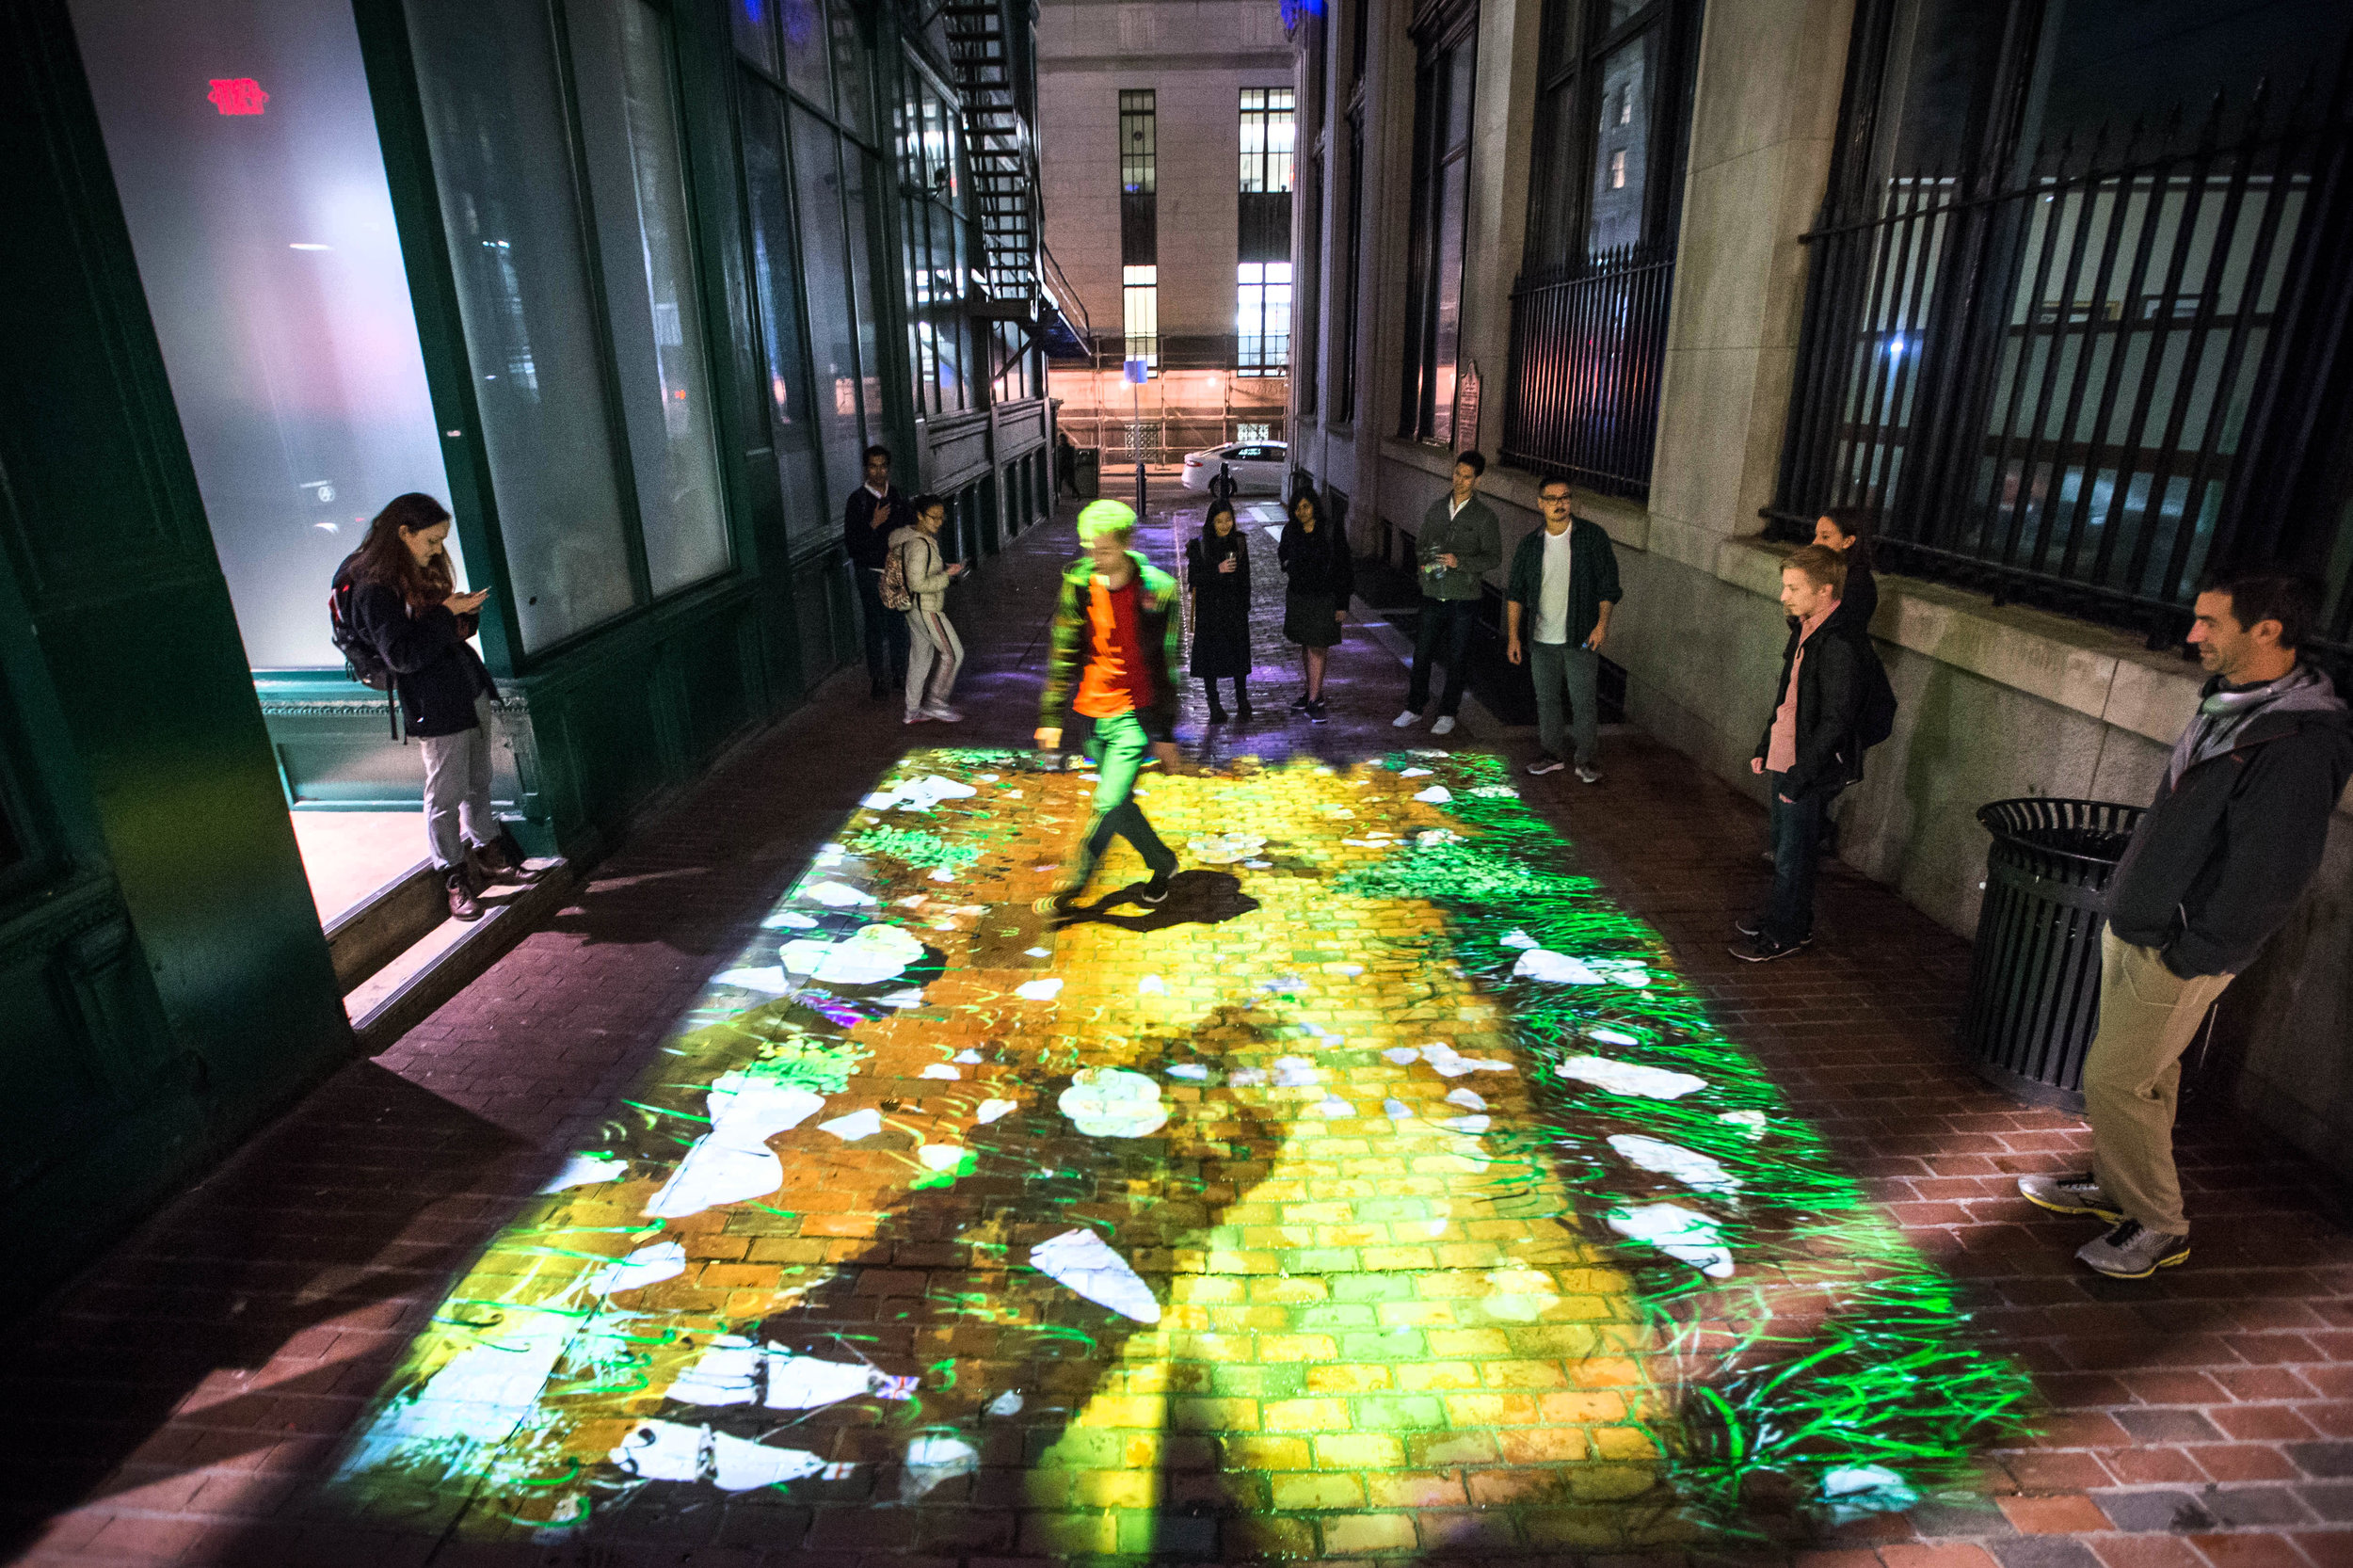 Wellspring Fords_Boston Bit-A-Magic_Illuminus 2017_Photo by Aram Boghosian_3.jpg